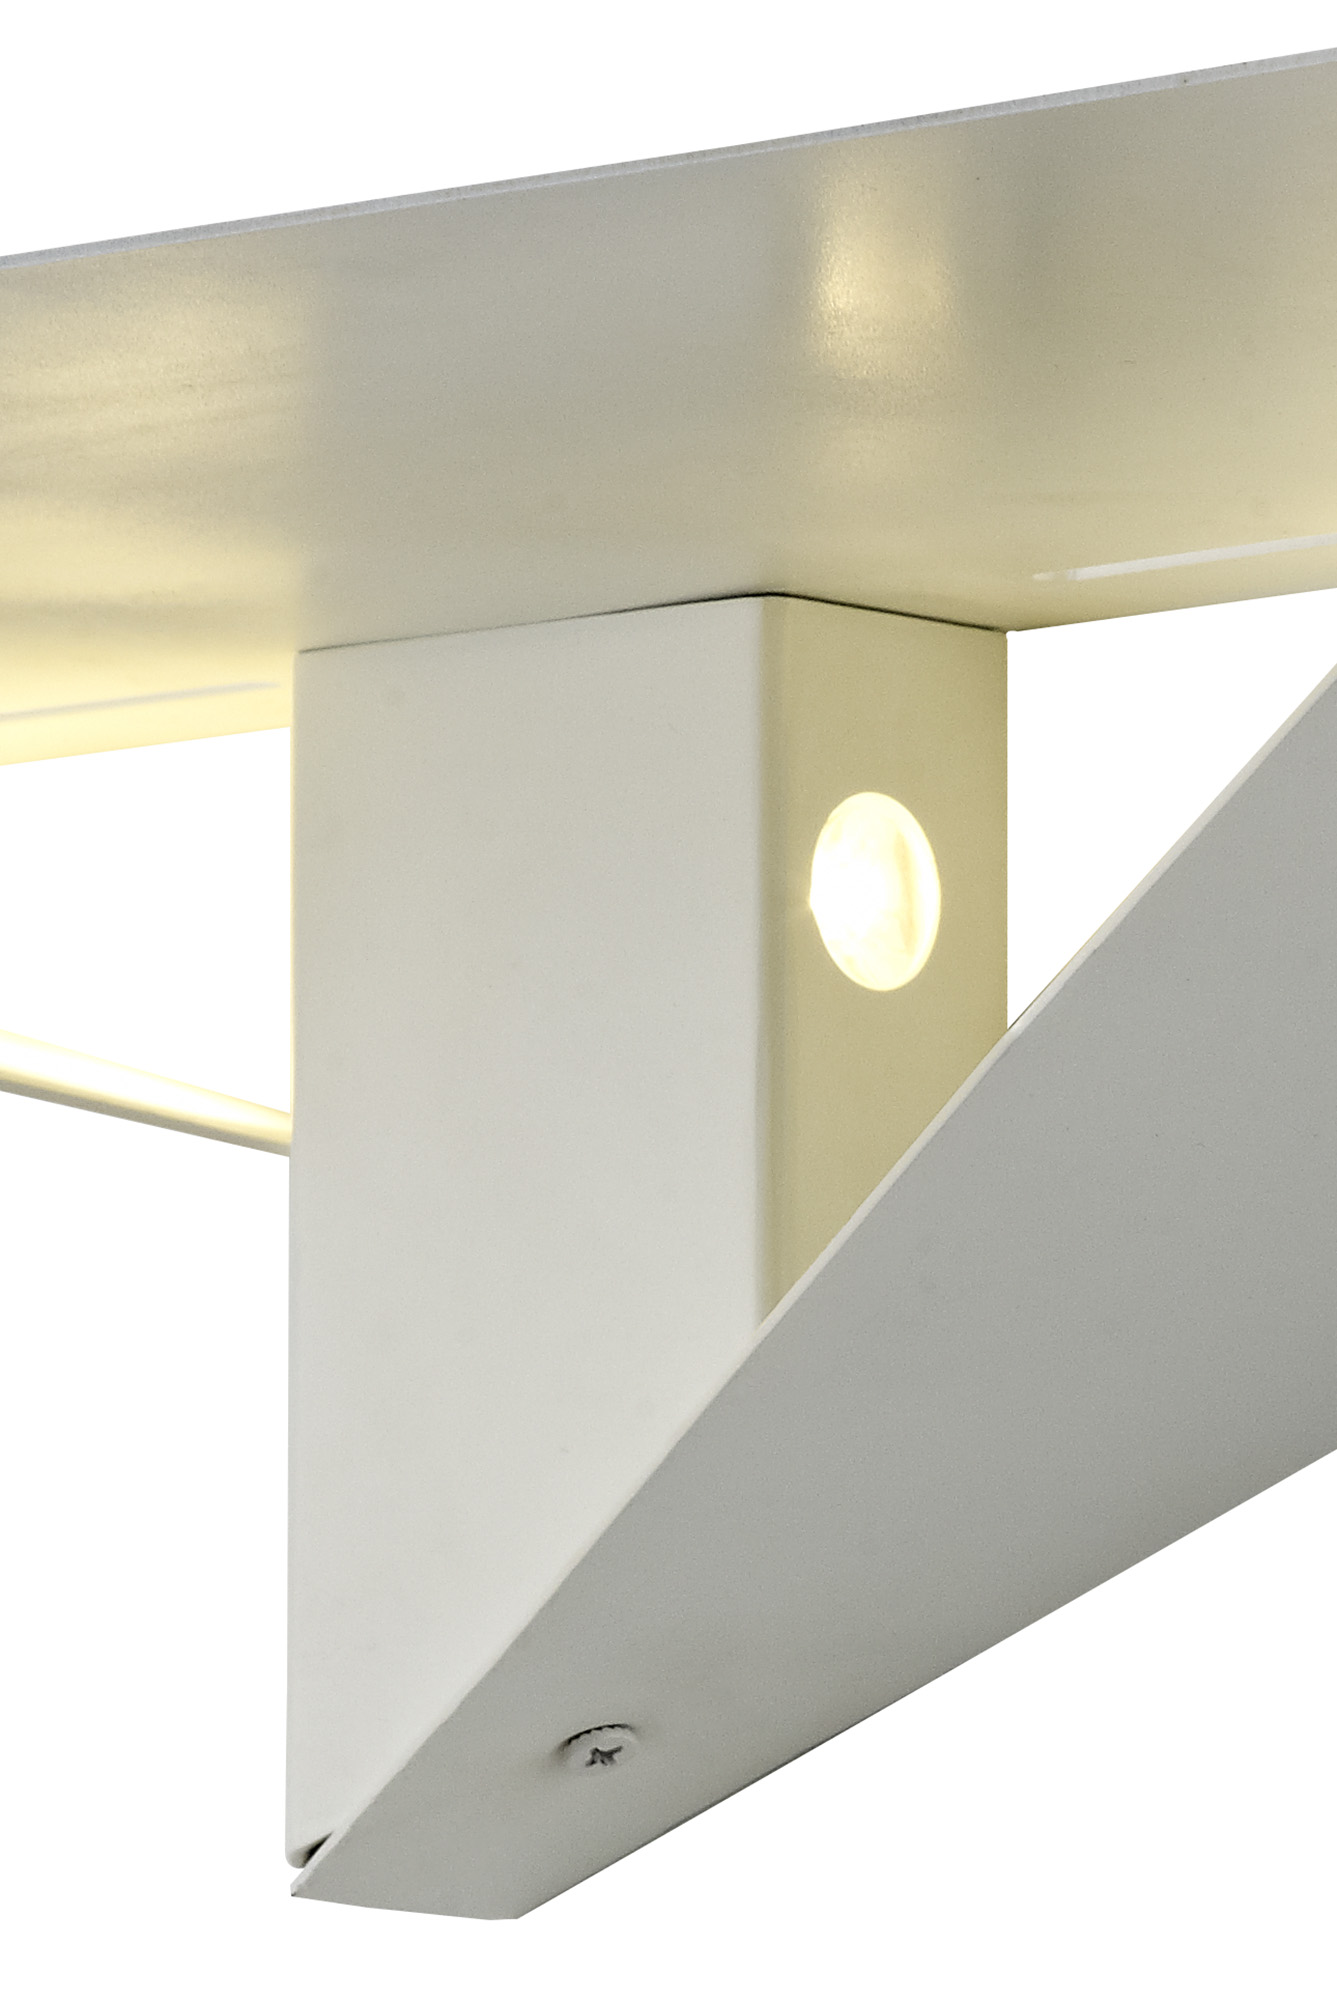 Wall Lamp, 2 x 3W LED, 3000K, 238lm, 3yrs Warranty